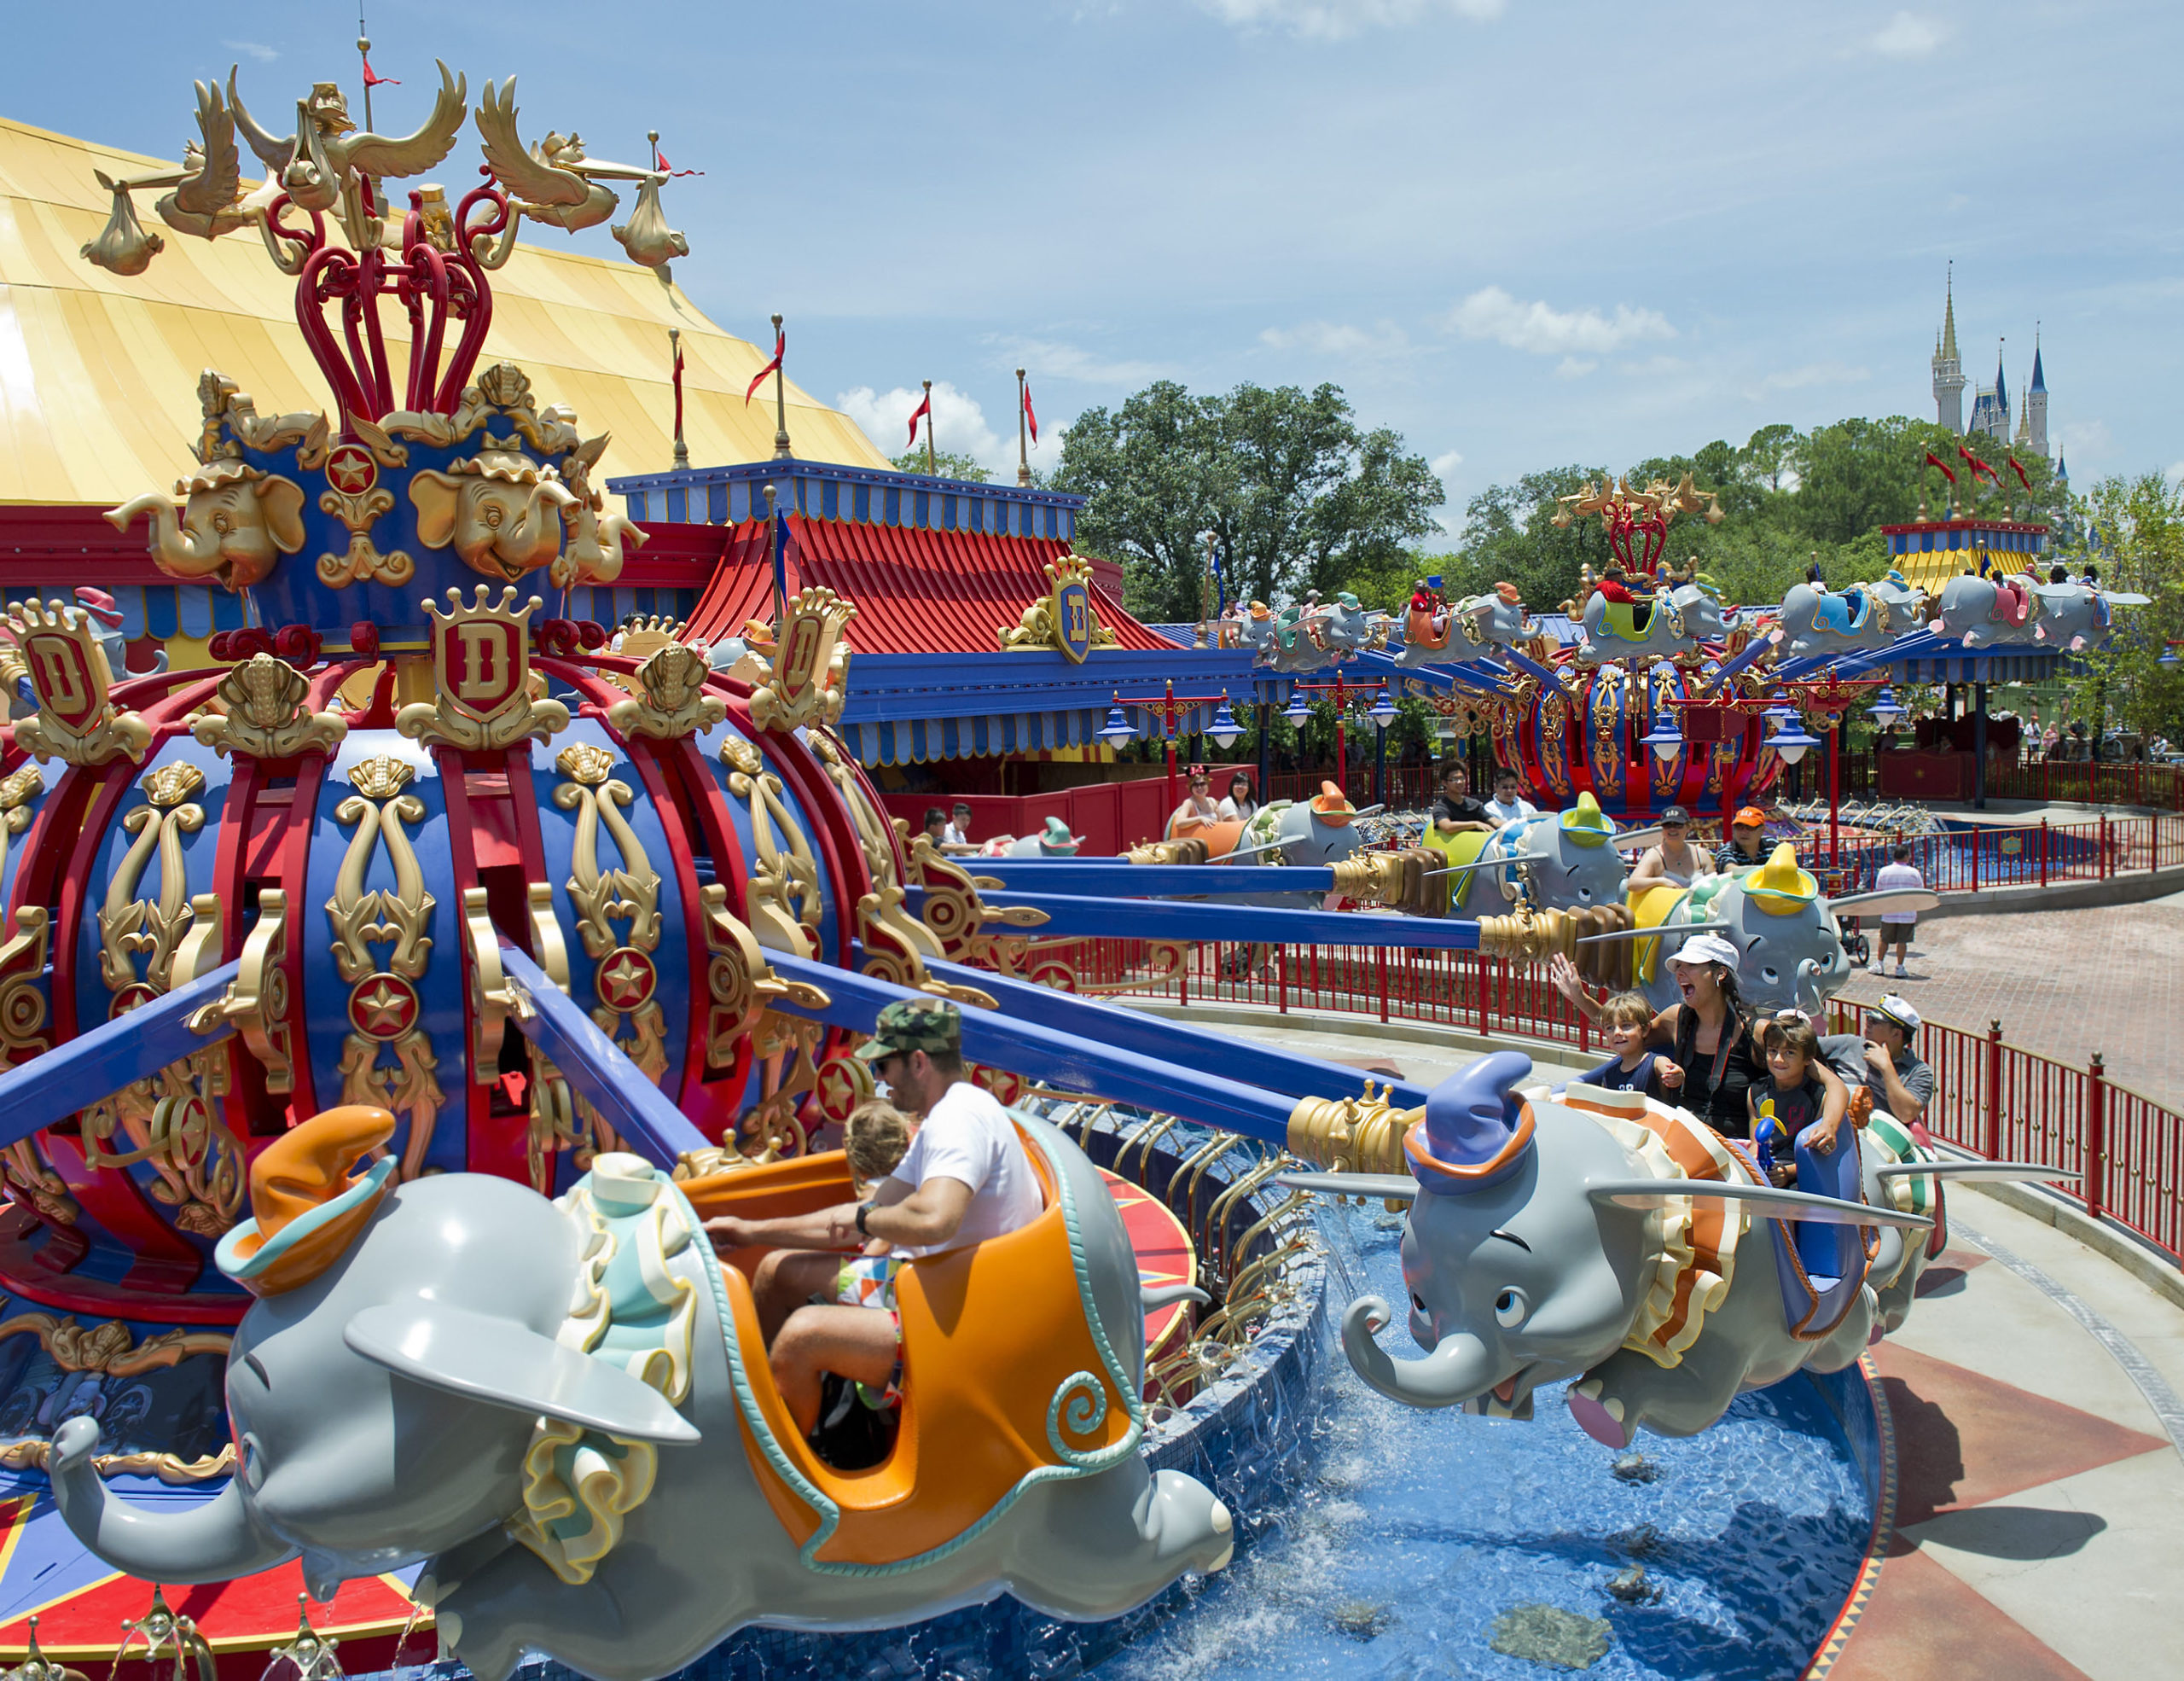 Toddlers on the Dumbo ride in Disney Magic Kingdom